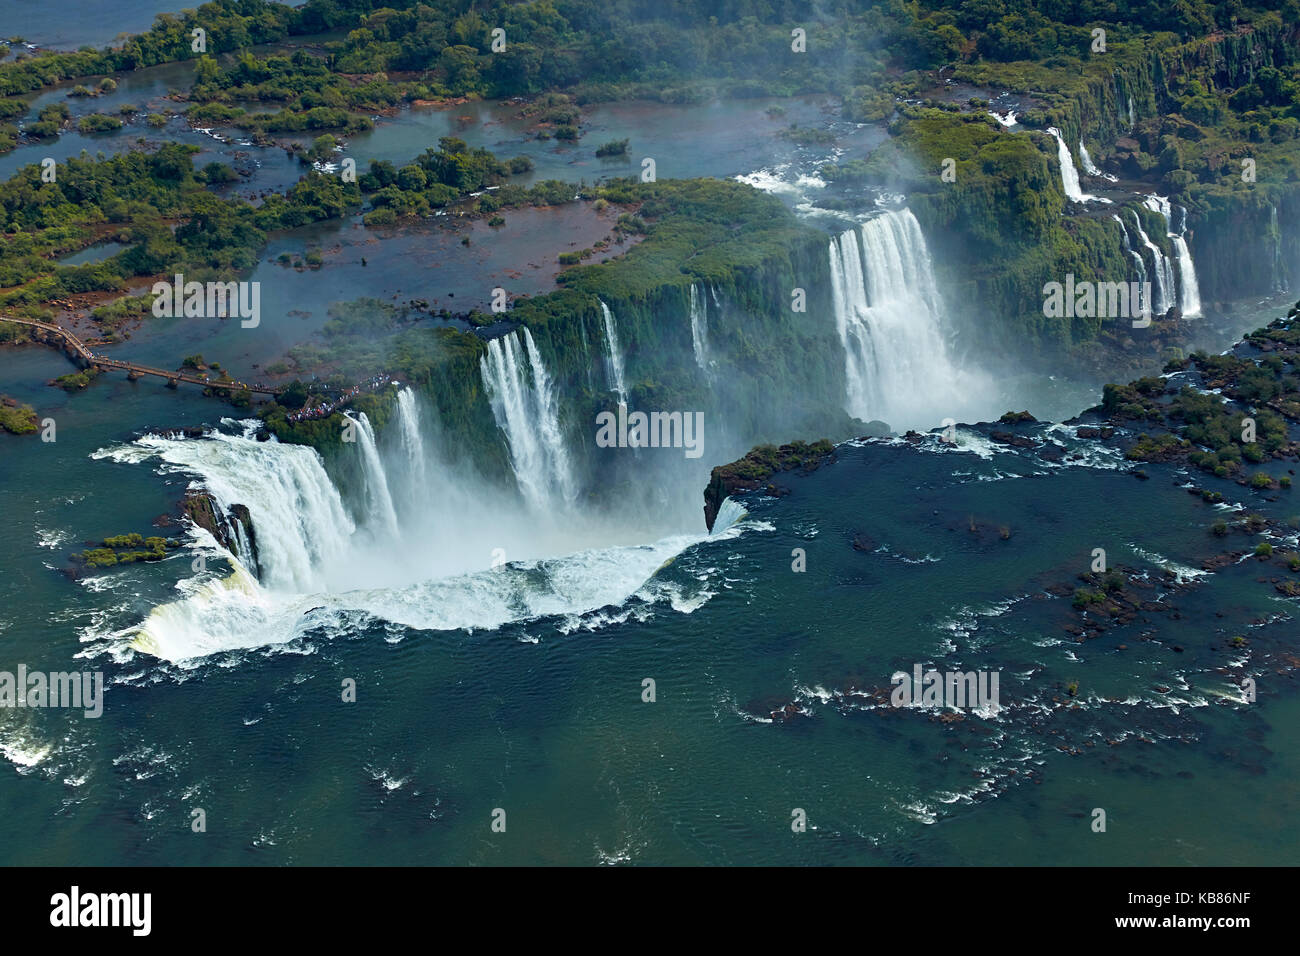 Walkway and Devil's Throat (Garganta do Diabo), Iguazu Falls, on Brazil - Argentina Border, South America - - Stock Image